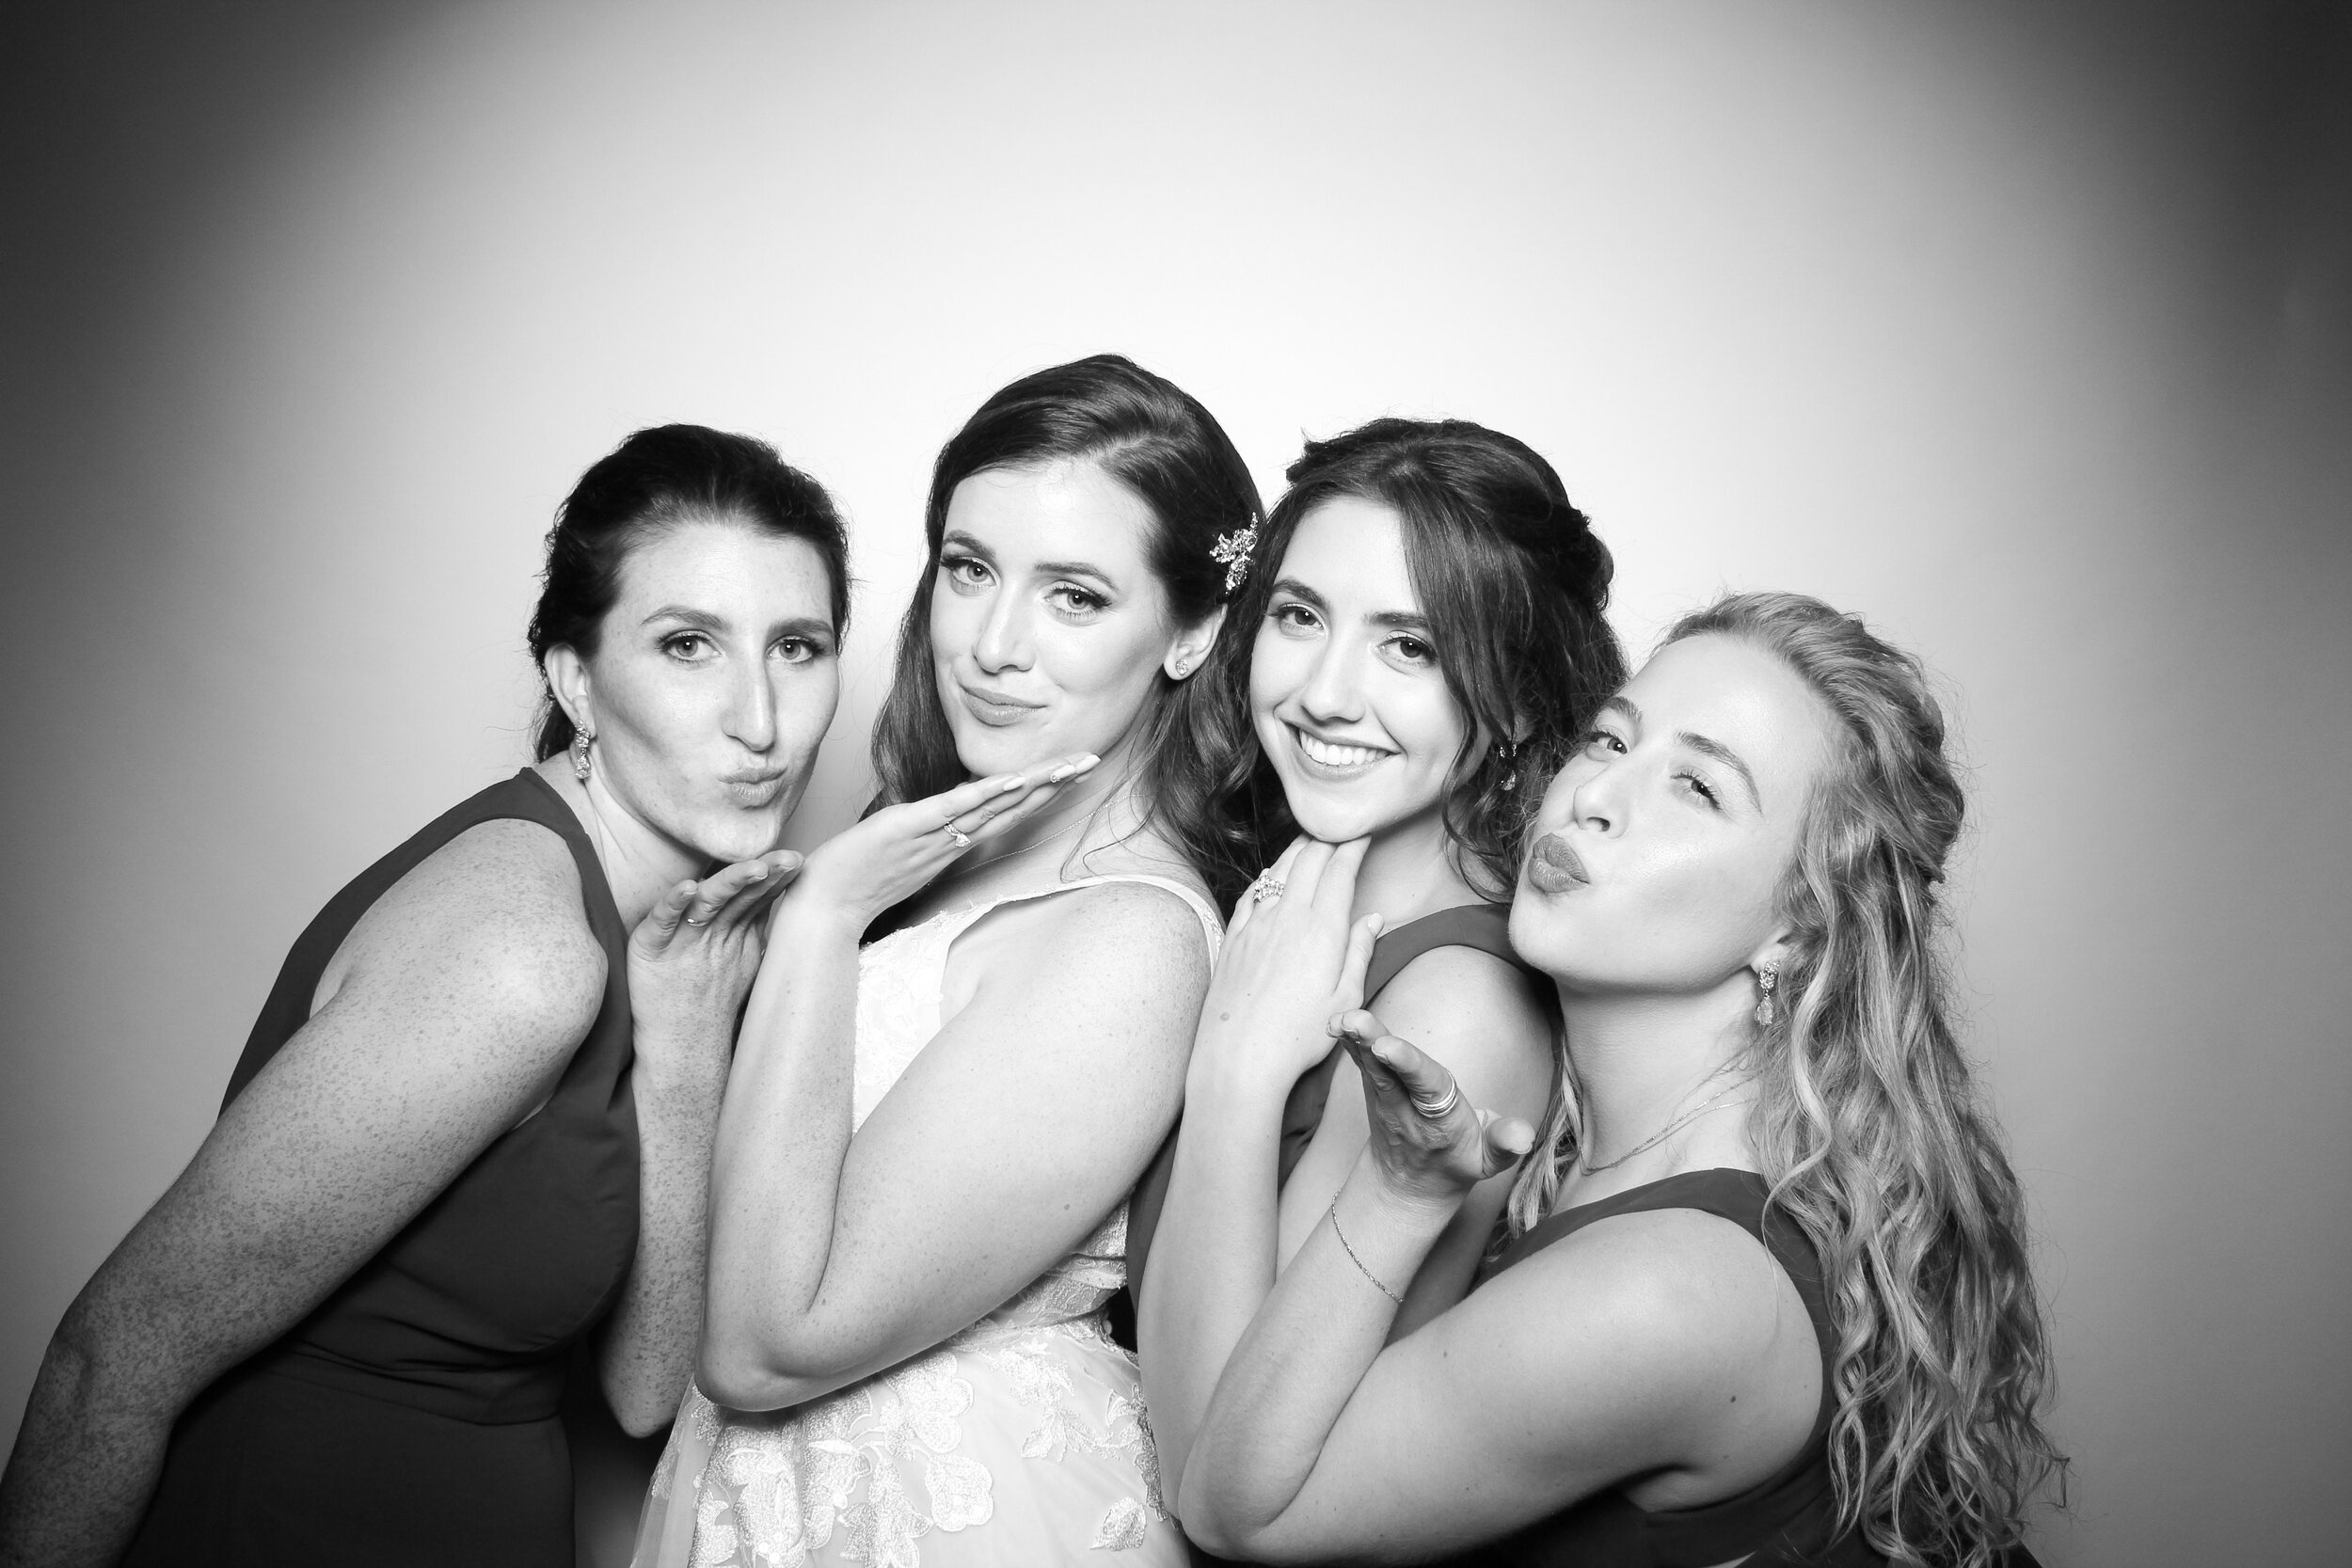 Mir_Mir_Kardashian_Style_Black_and_White_Photo_Booth_Chicago_04.jpg